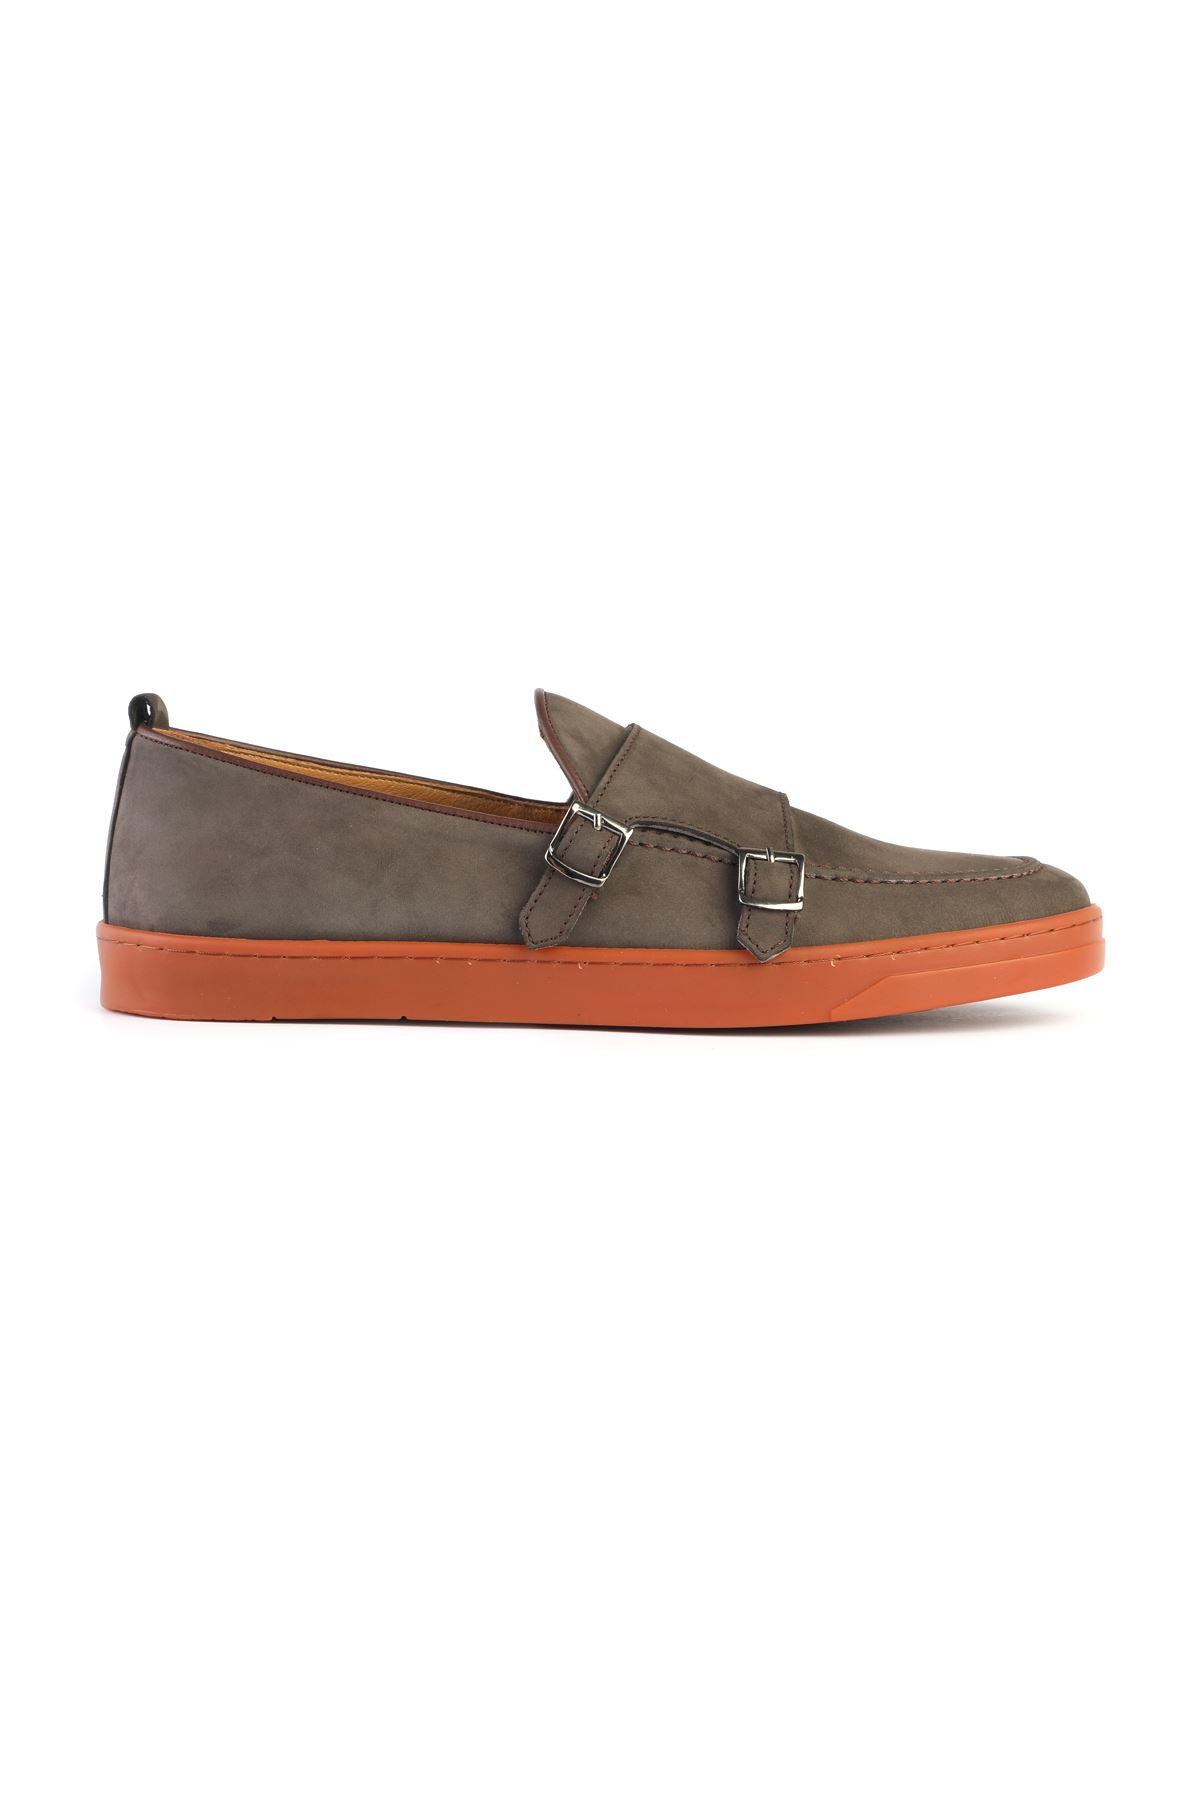 Libero 3357 Brown Loafer Shoes